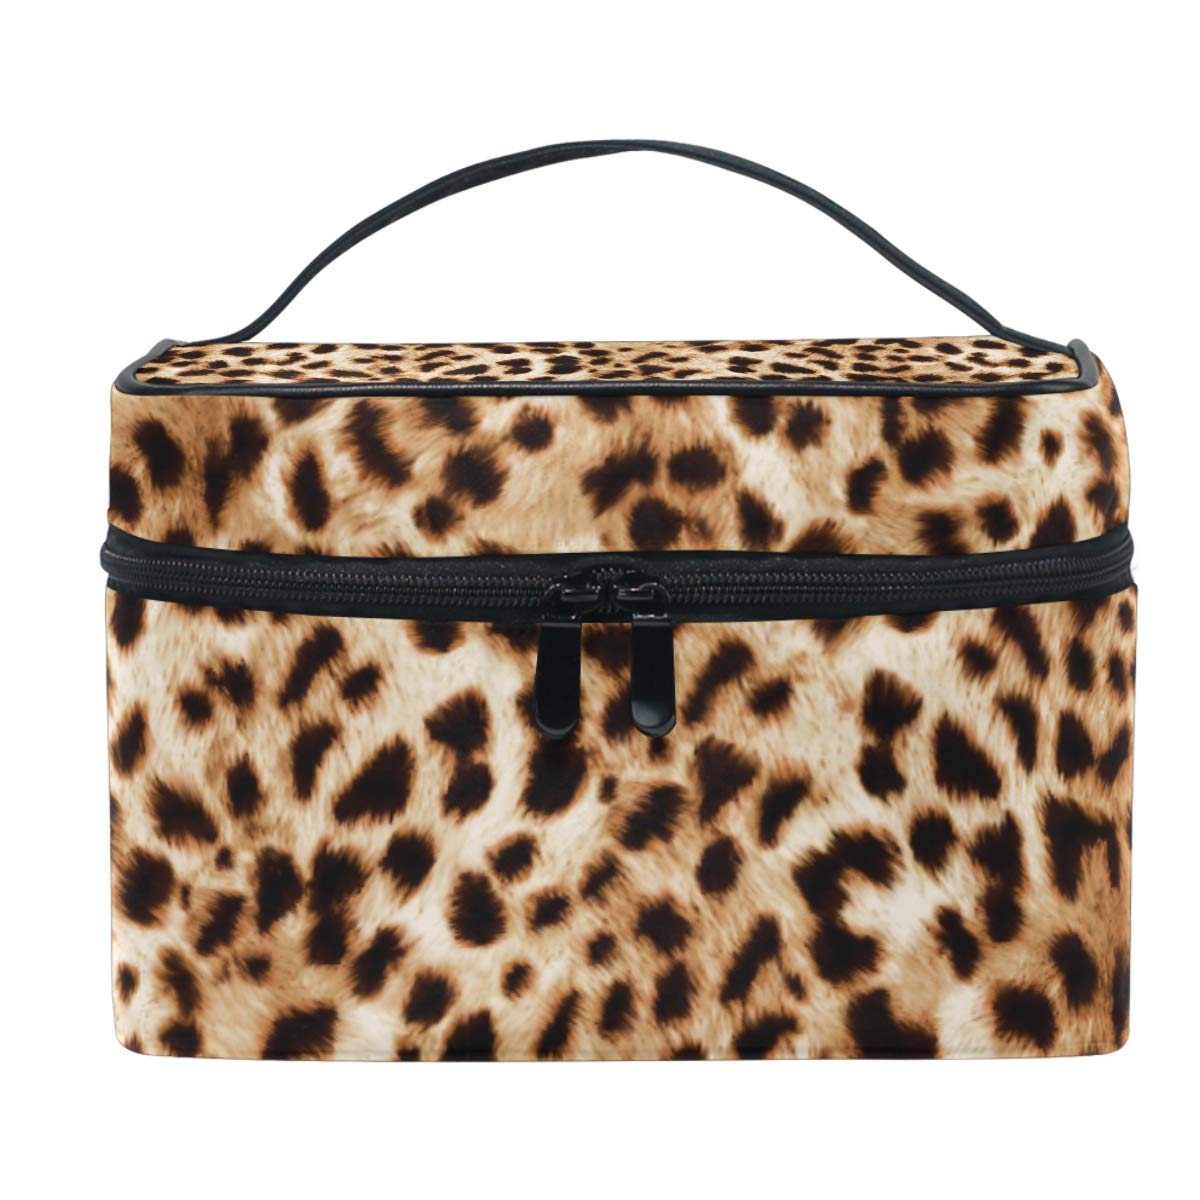 Vintage Leopard pattern Makeup Bag Cosmetic Bag Toiletry Travel Brush Bag Train Case for Women Funny Animal Skin Zip Carrying Portable Multifunctional Organizer Storage Pouch Bags Box